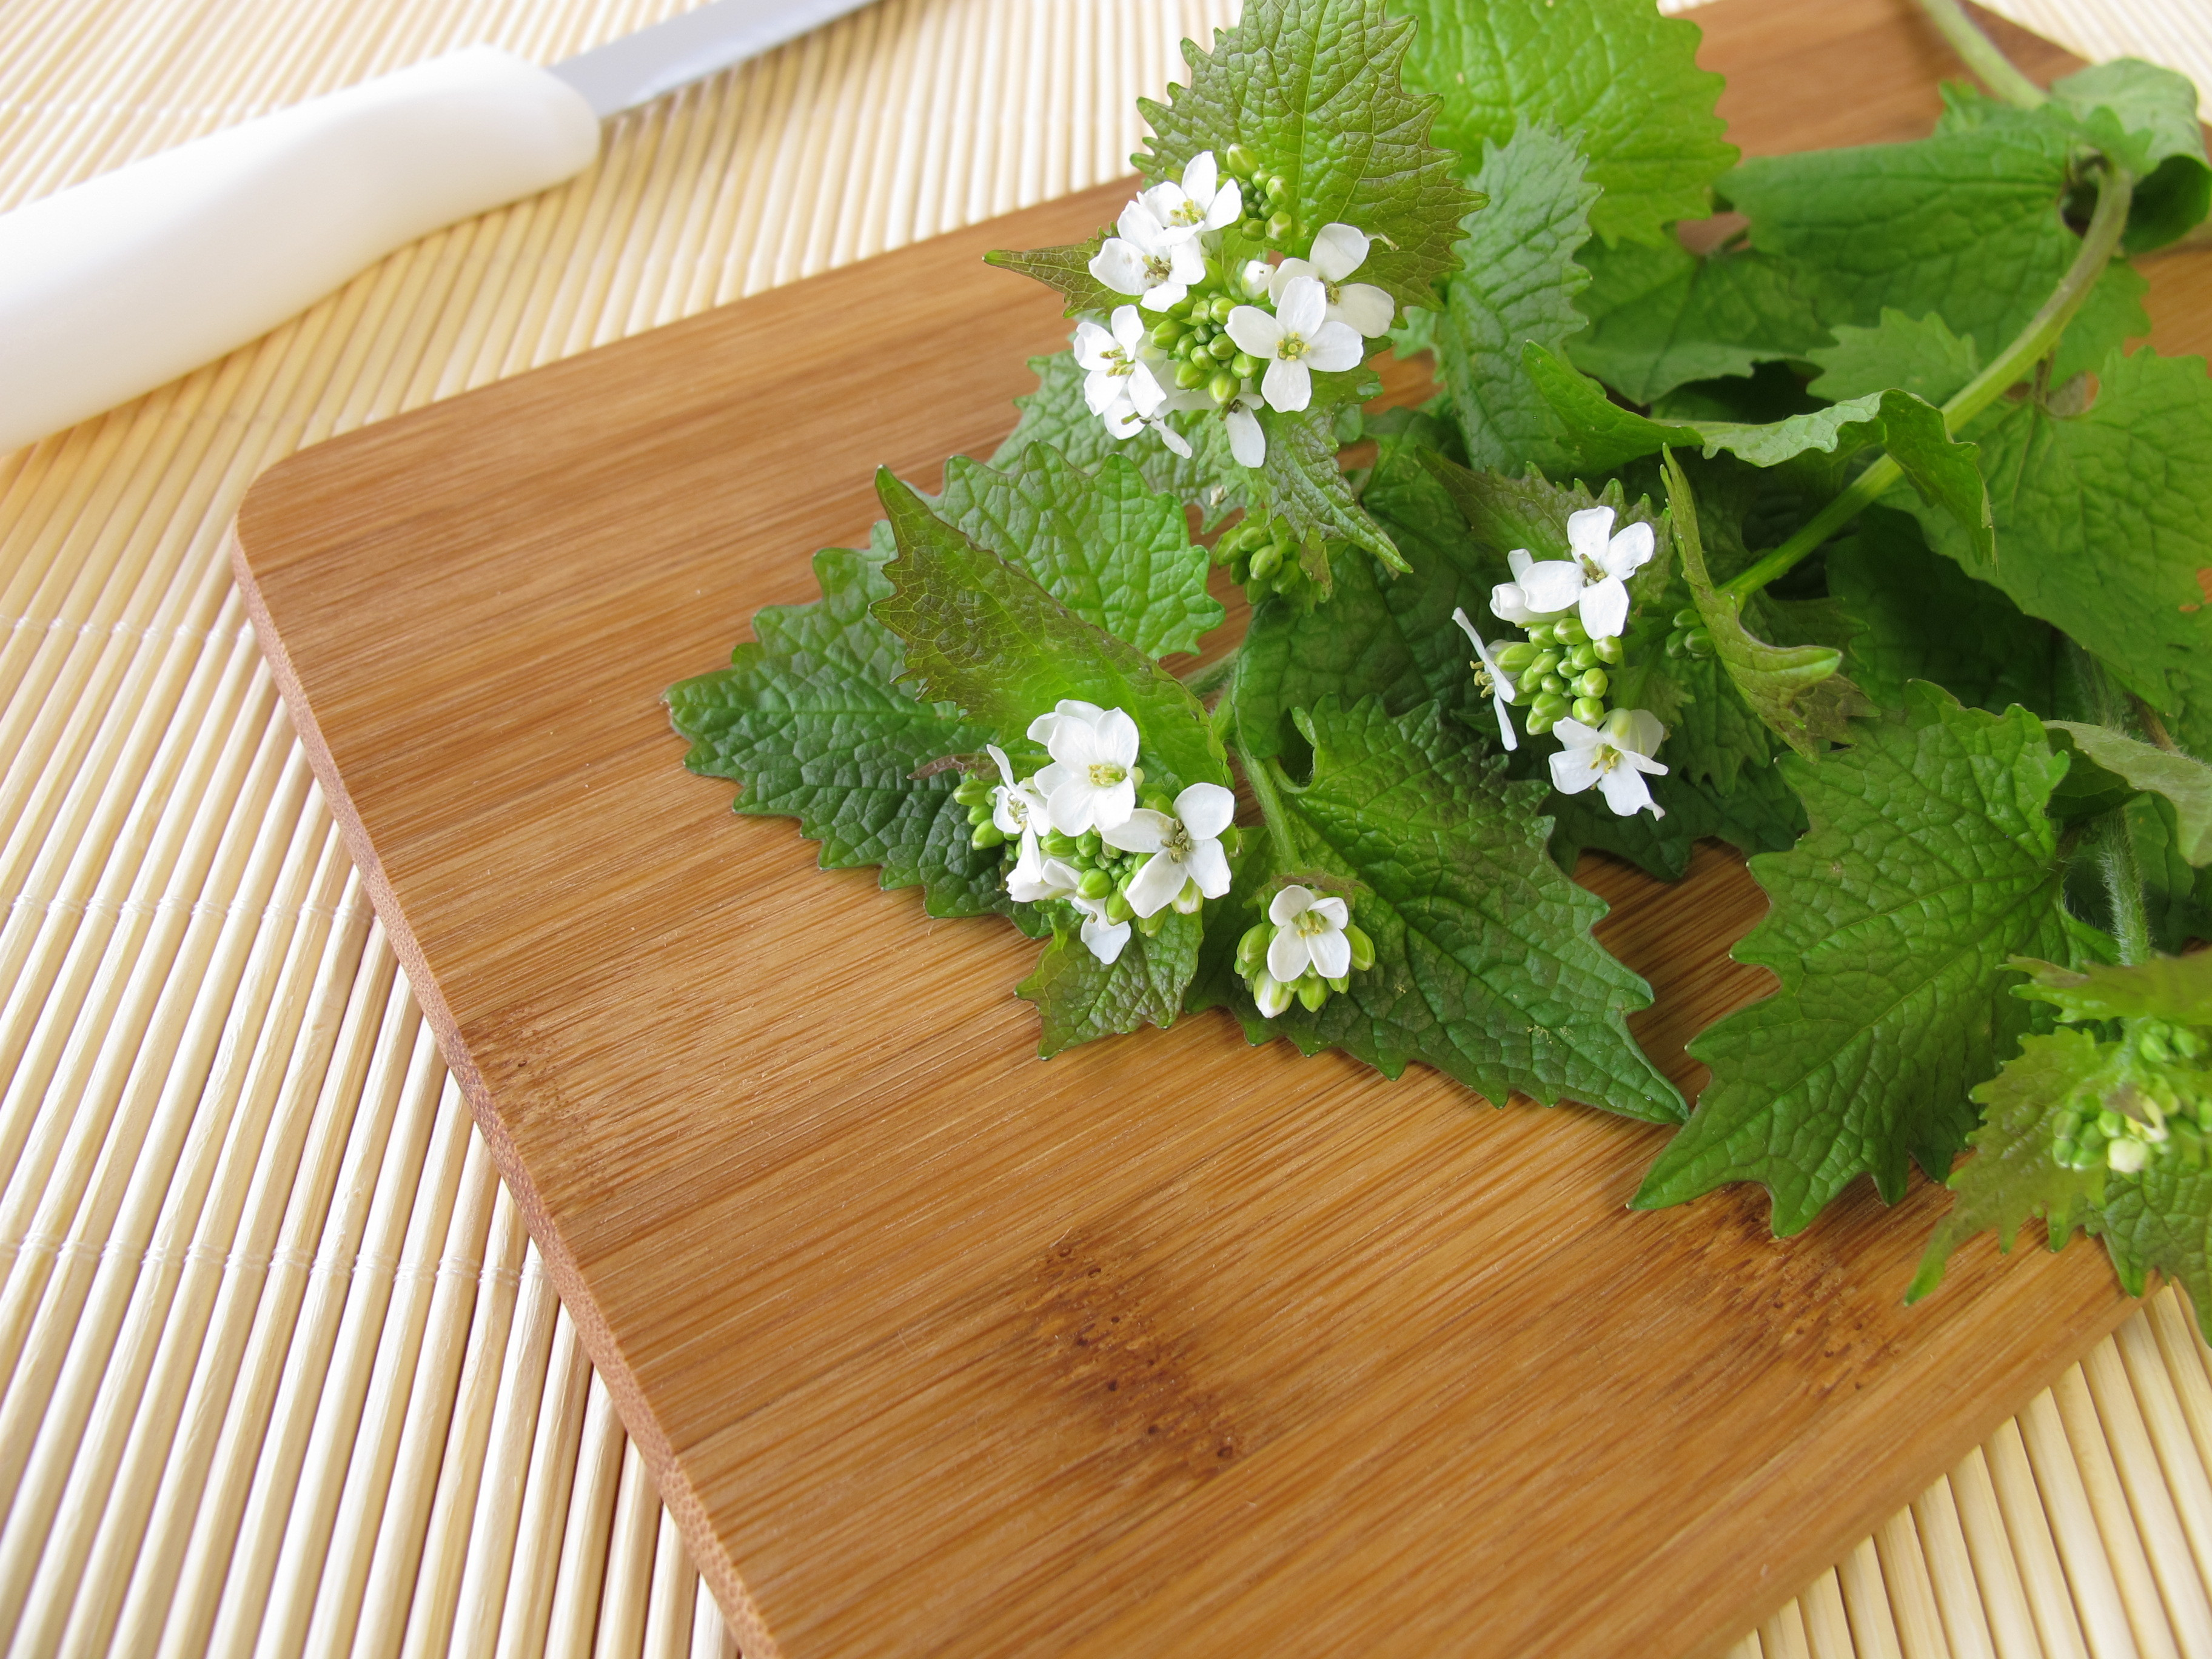 10 Edible Weeds Likely Growing in Your Yard - Modern Farmer